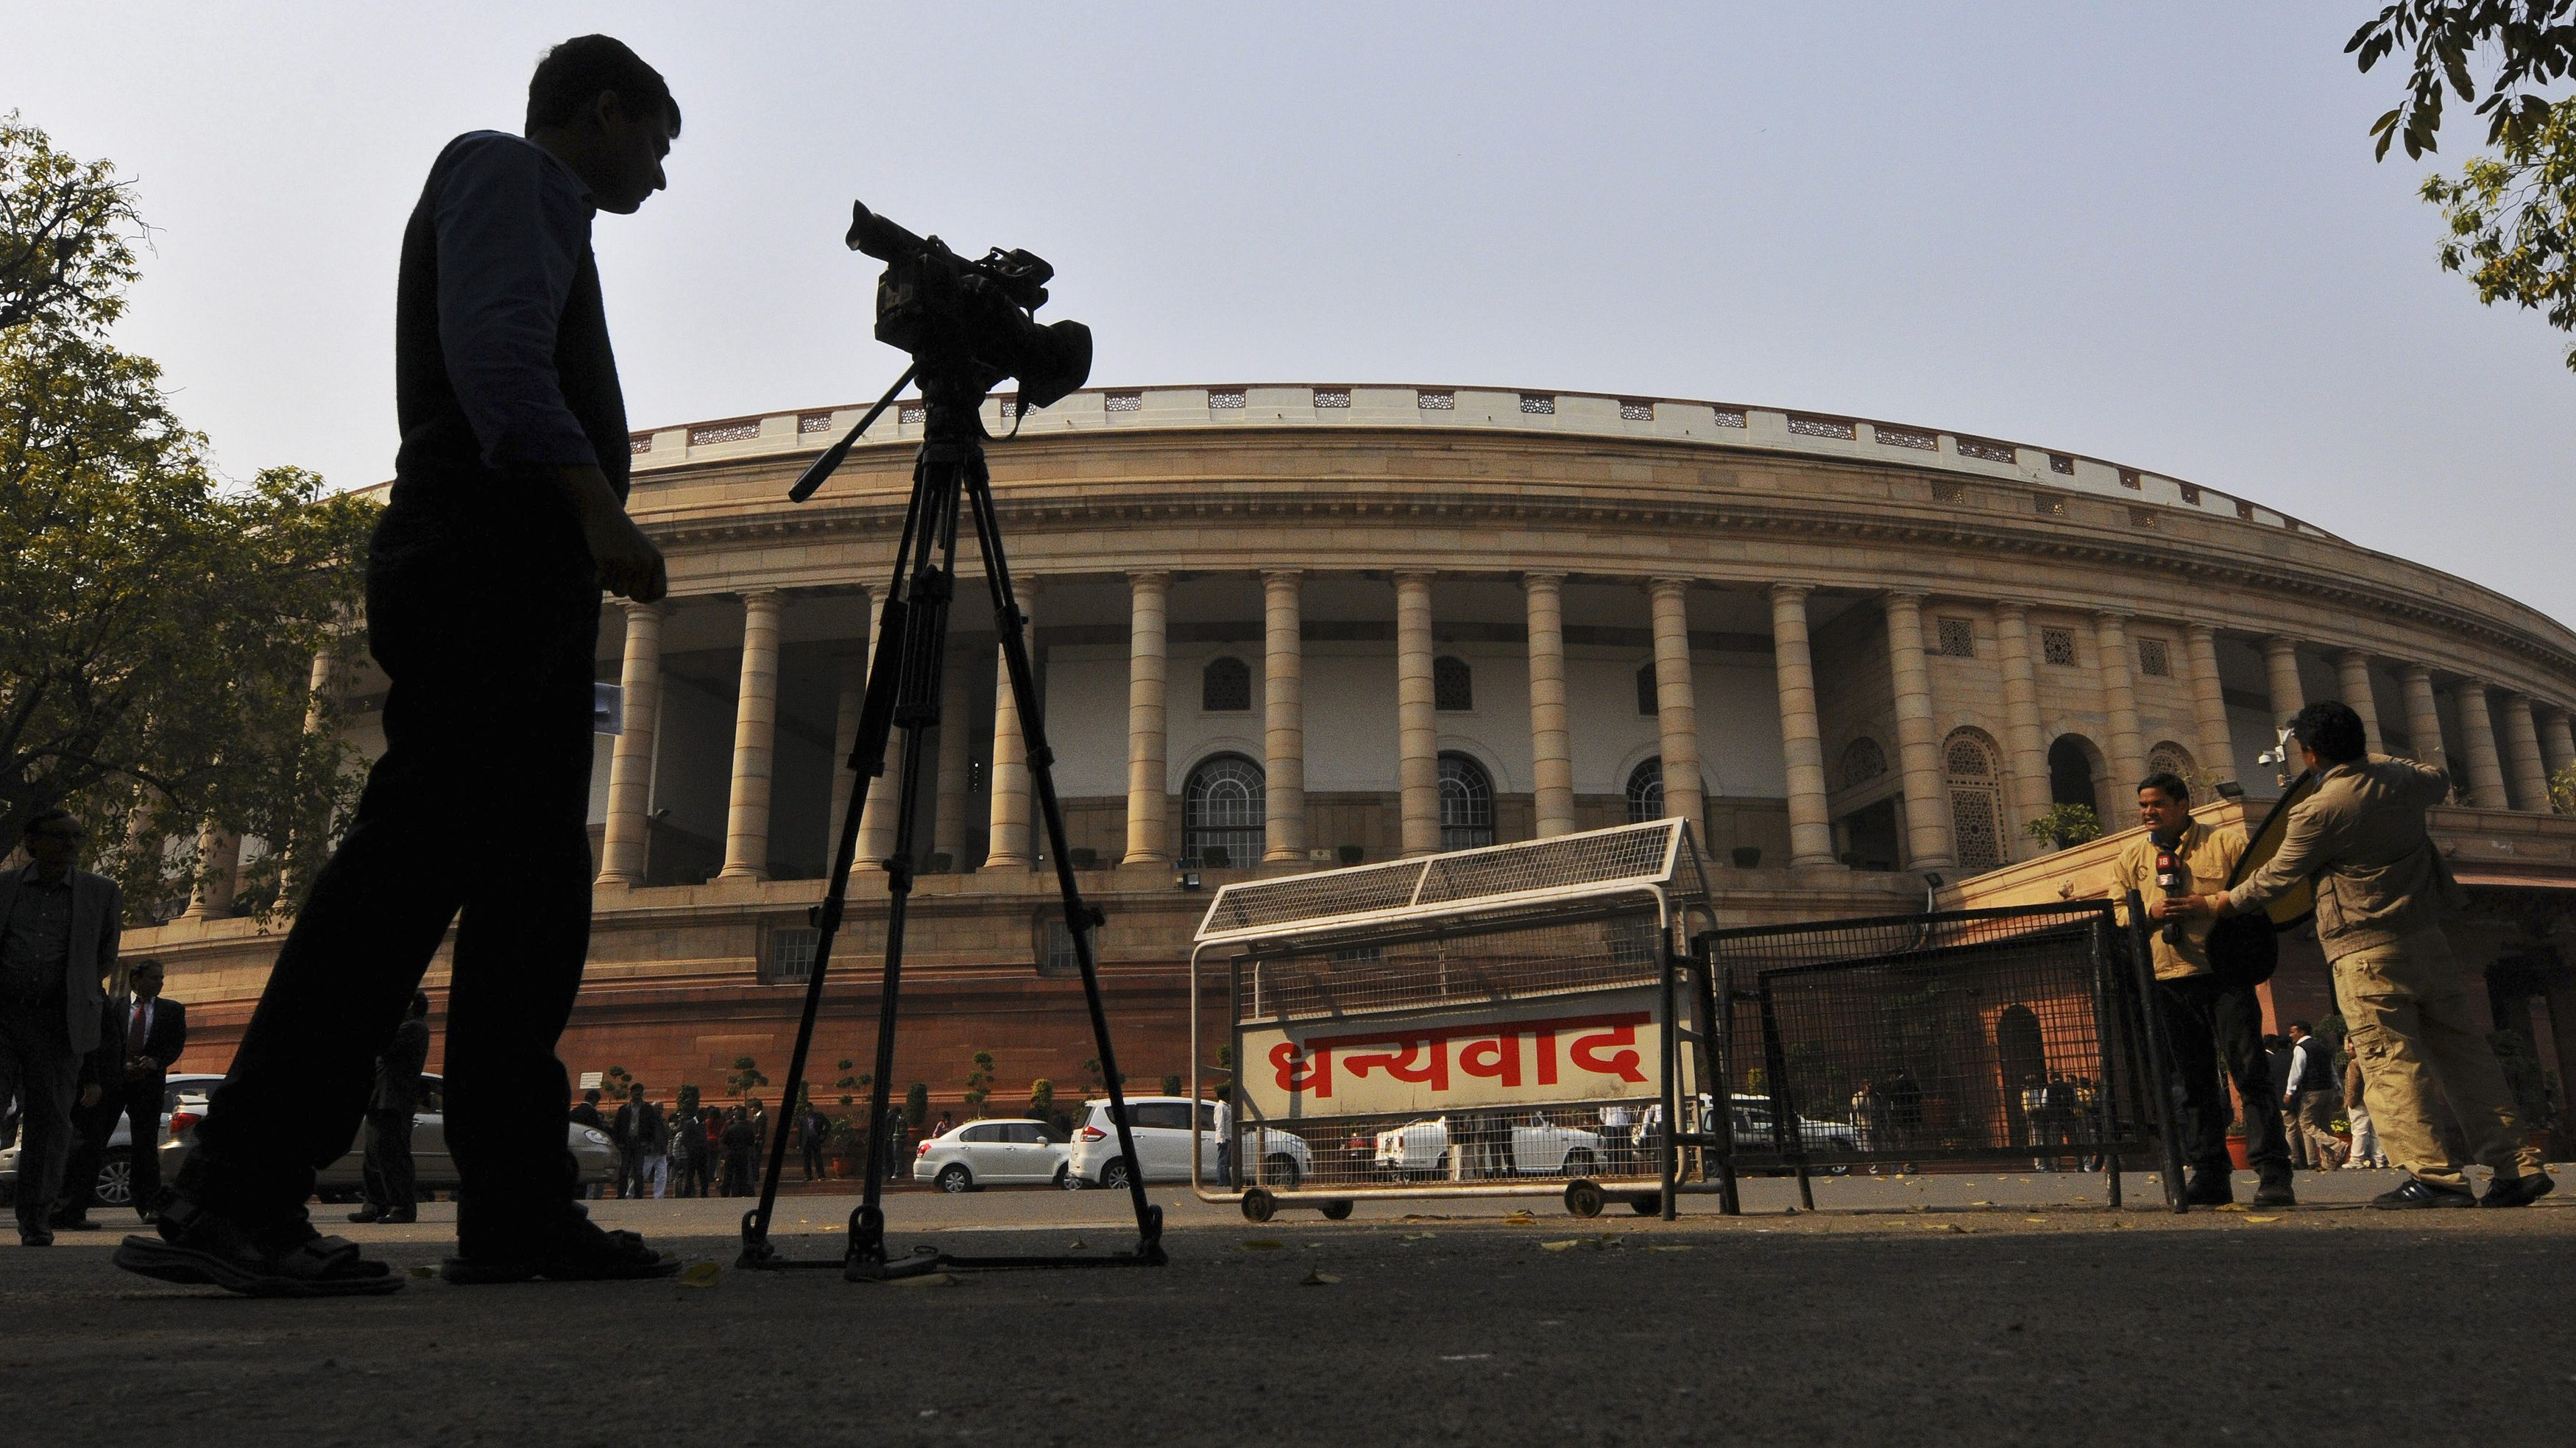 Television journalists report from the premises of India's Parliament in New Delhi